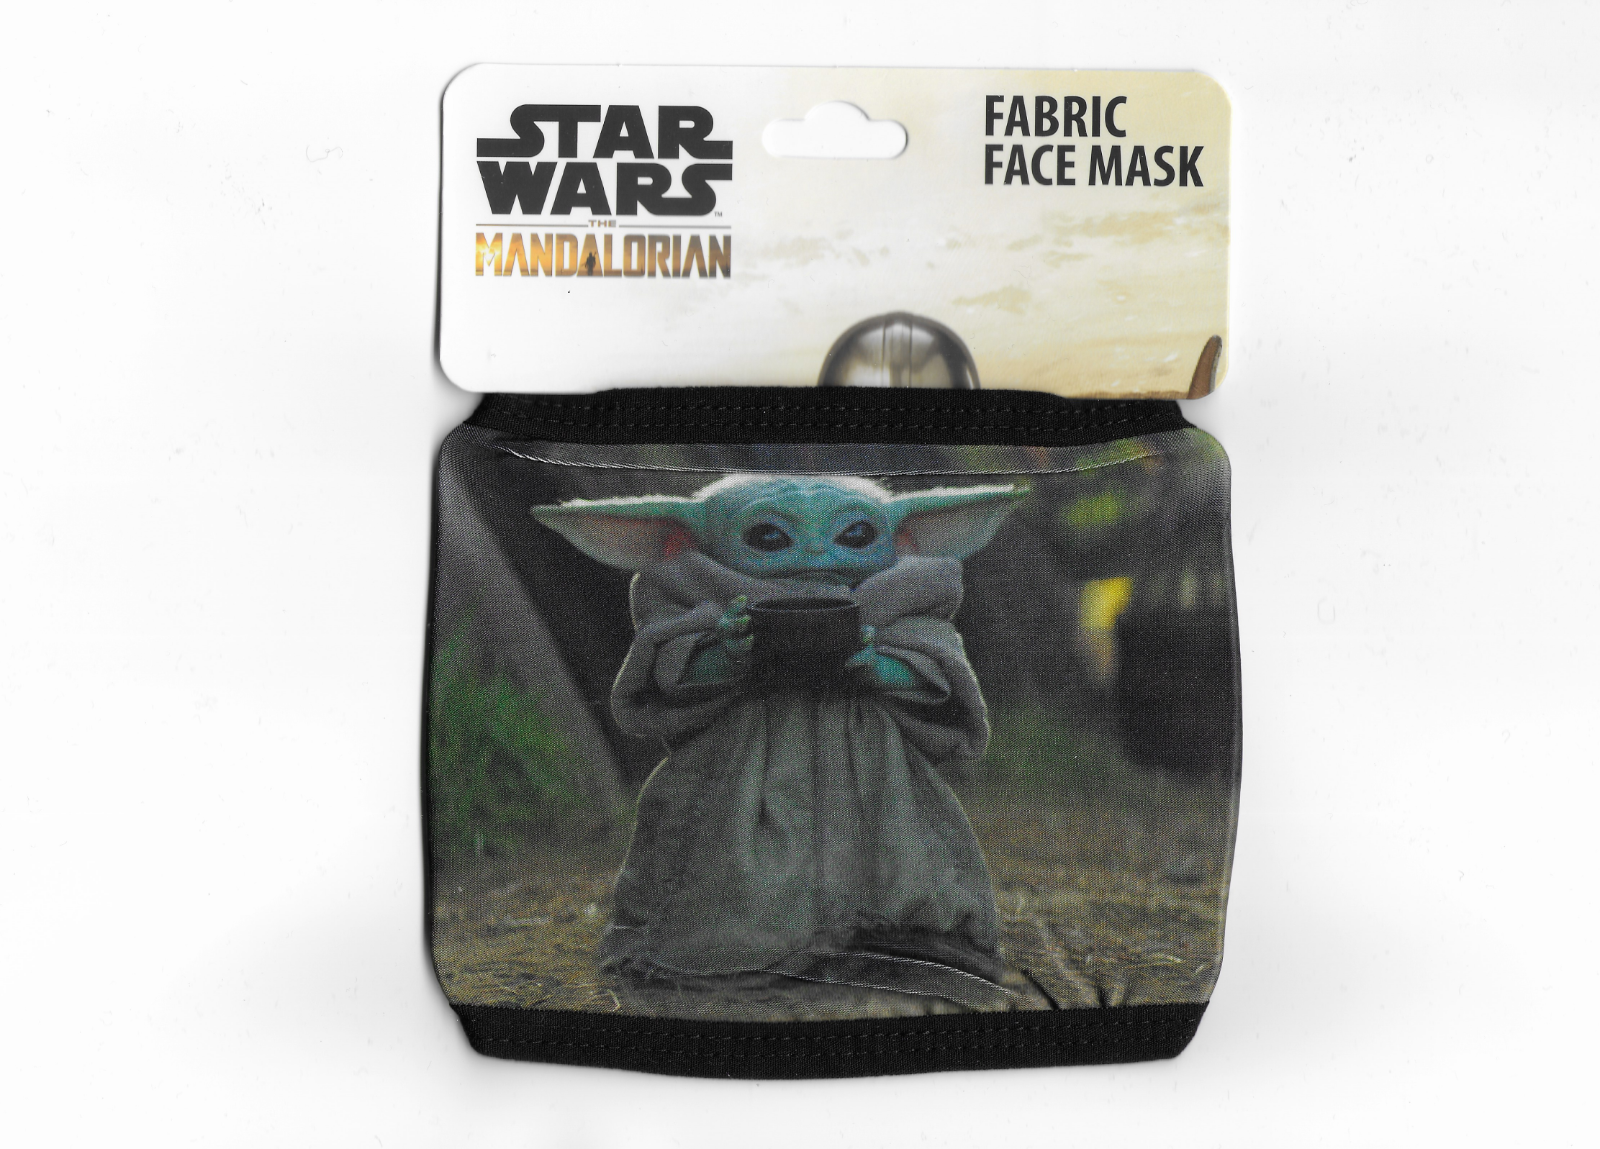 Star Wars: The Mandalorian Baby Yoda The Child Grogu Adult Fabric Face Mask